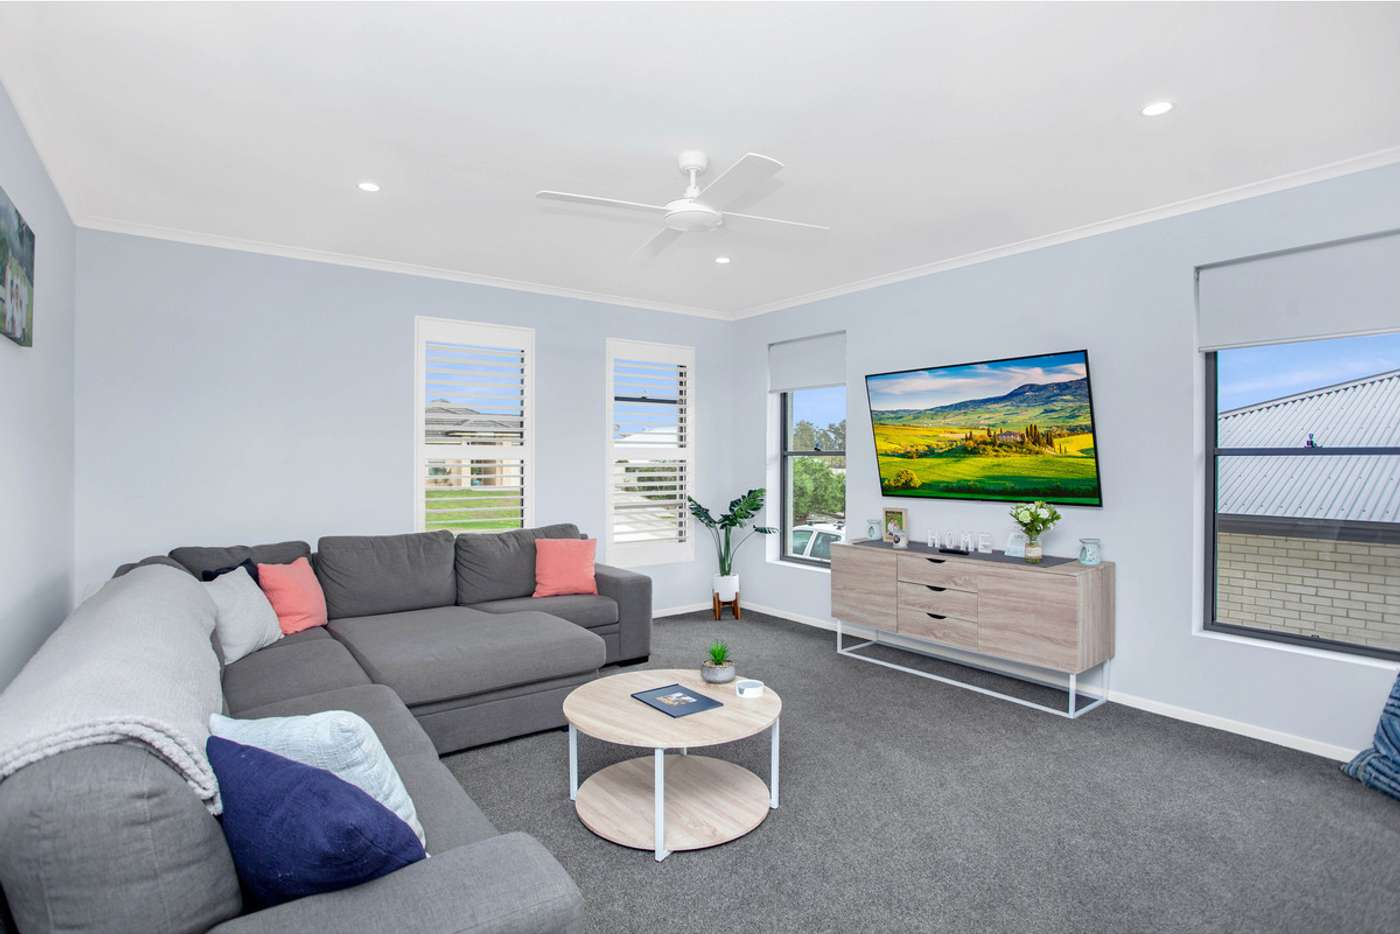 Sixth view of Homely house listing, 16 Treetops Parade, Wingham NSW 2429